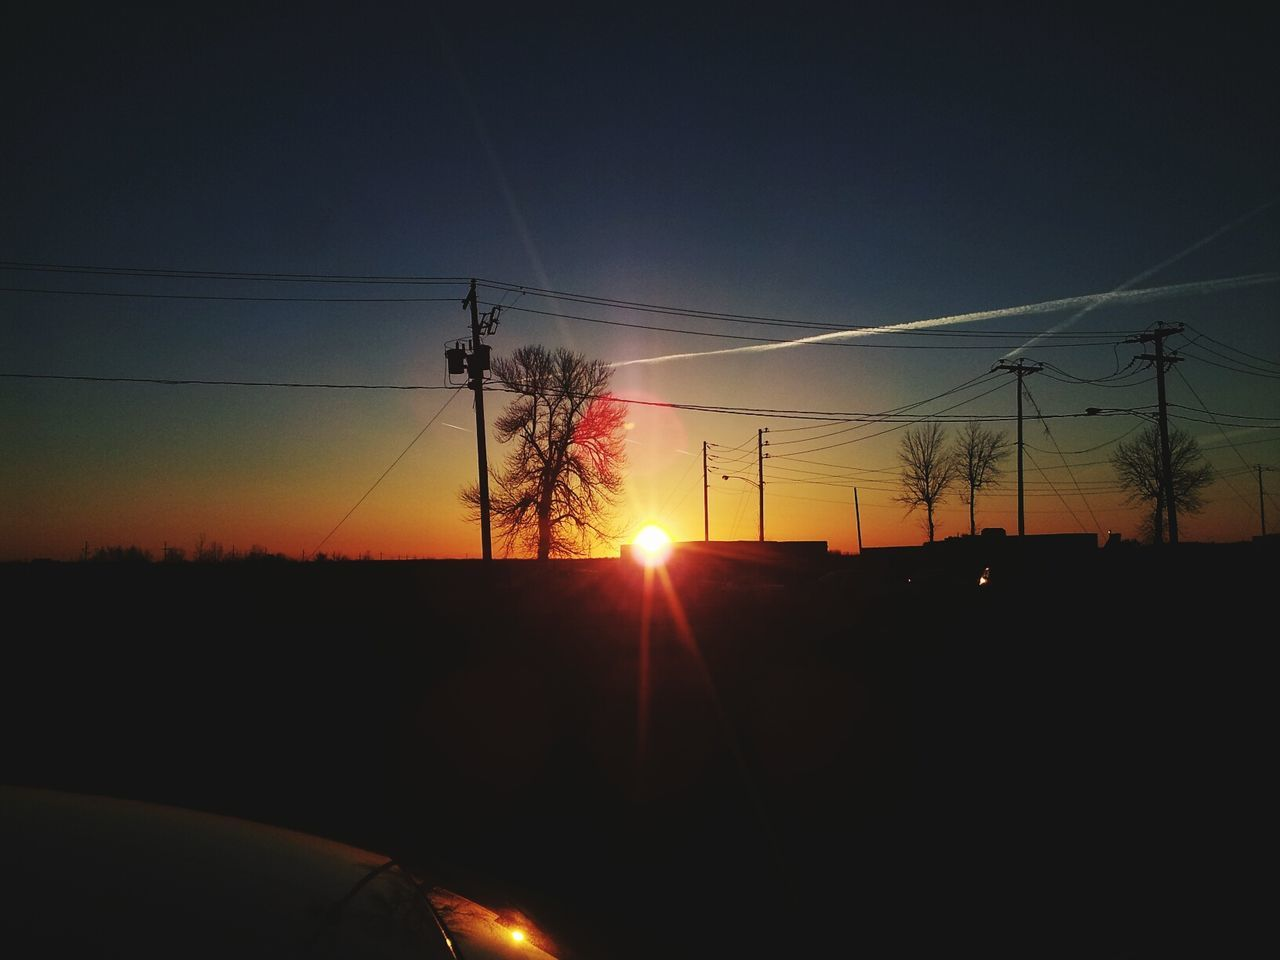 sunset, sun, cable, silhouette, power line, sky, nature, no people, car, electricity, sunlight, electricity pylon, landscape, beauty in nature, technology, outdoors, scenics, tree, day, vapor trail